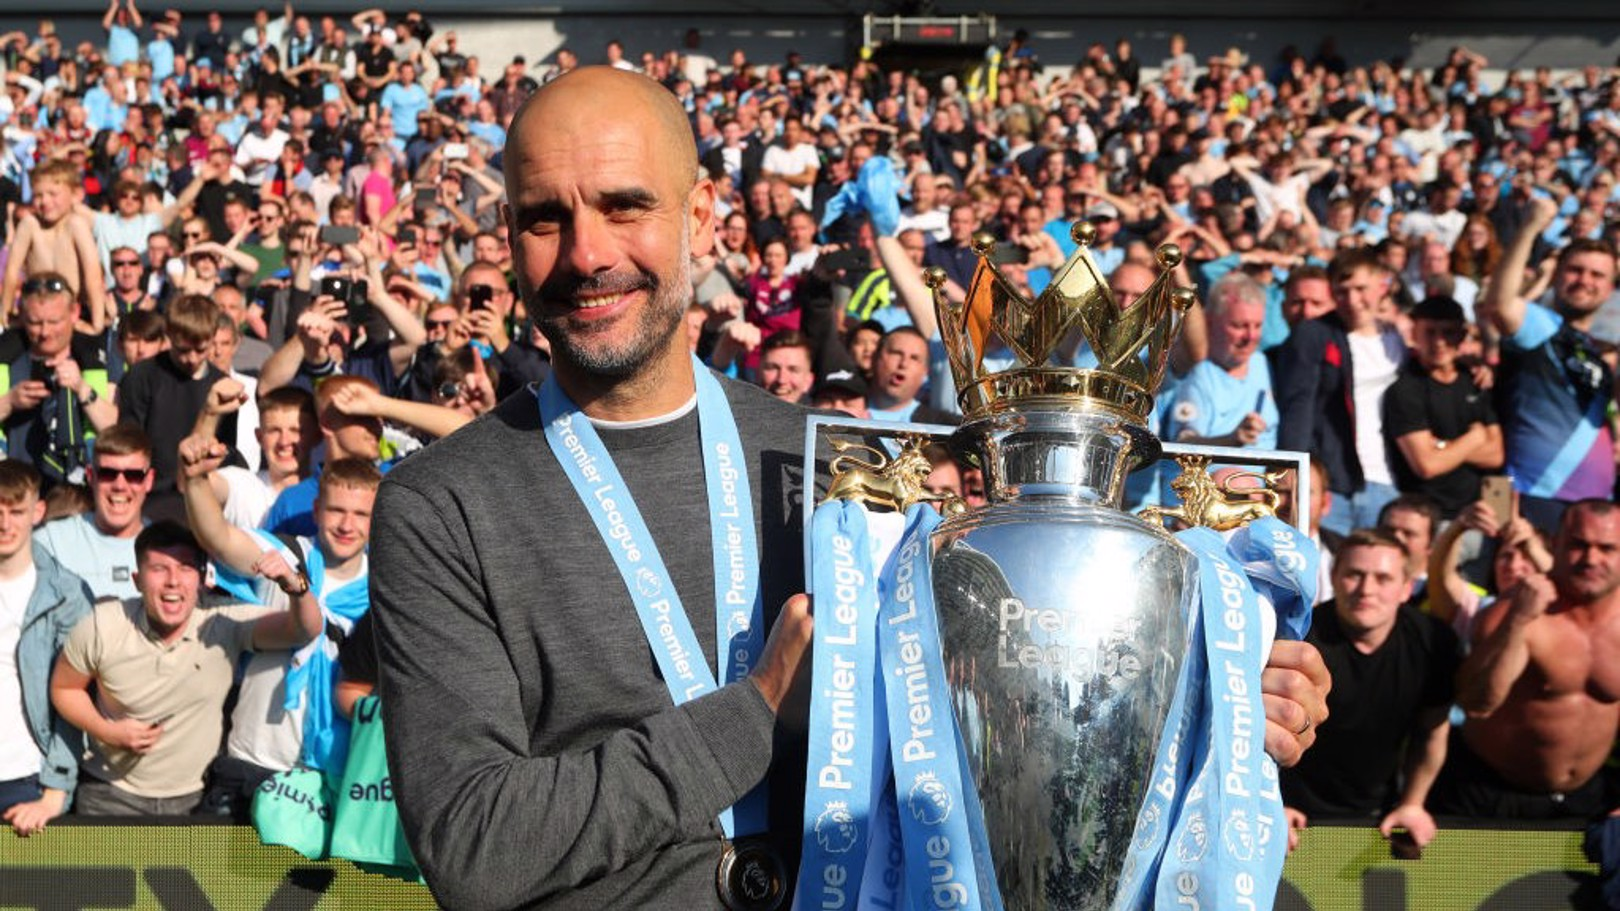 RECOGNITION: Pep Guardiola has been inducted into the LMA Hall of Fame.